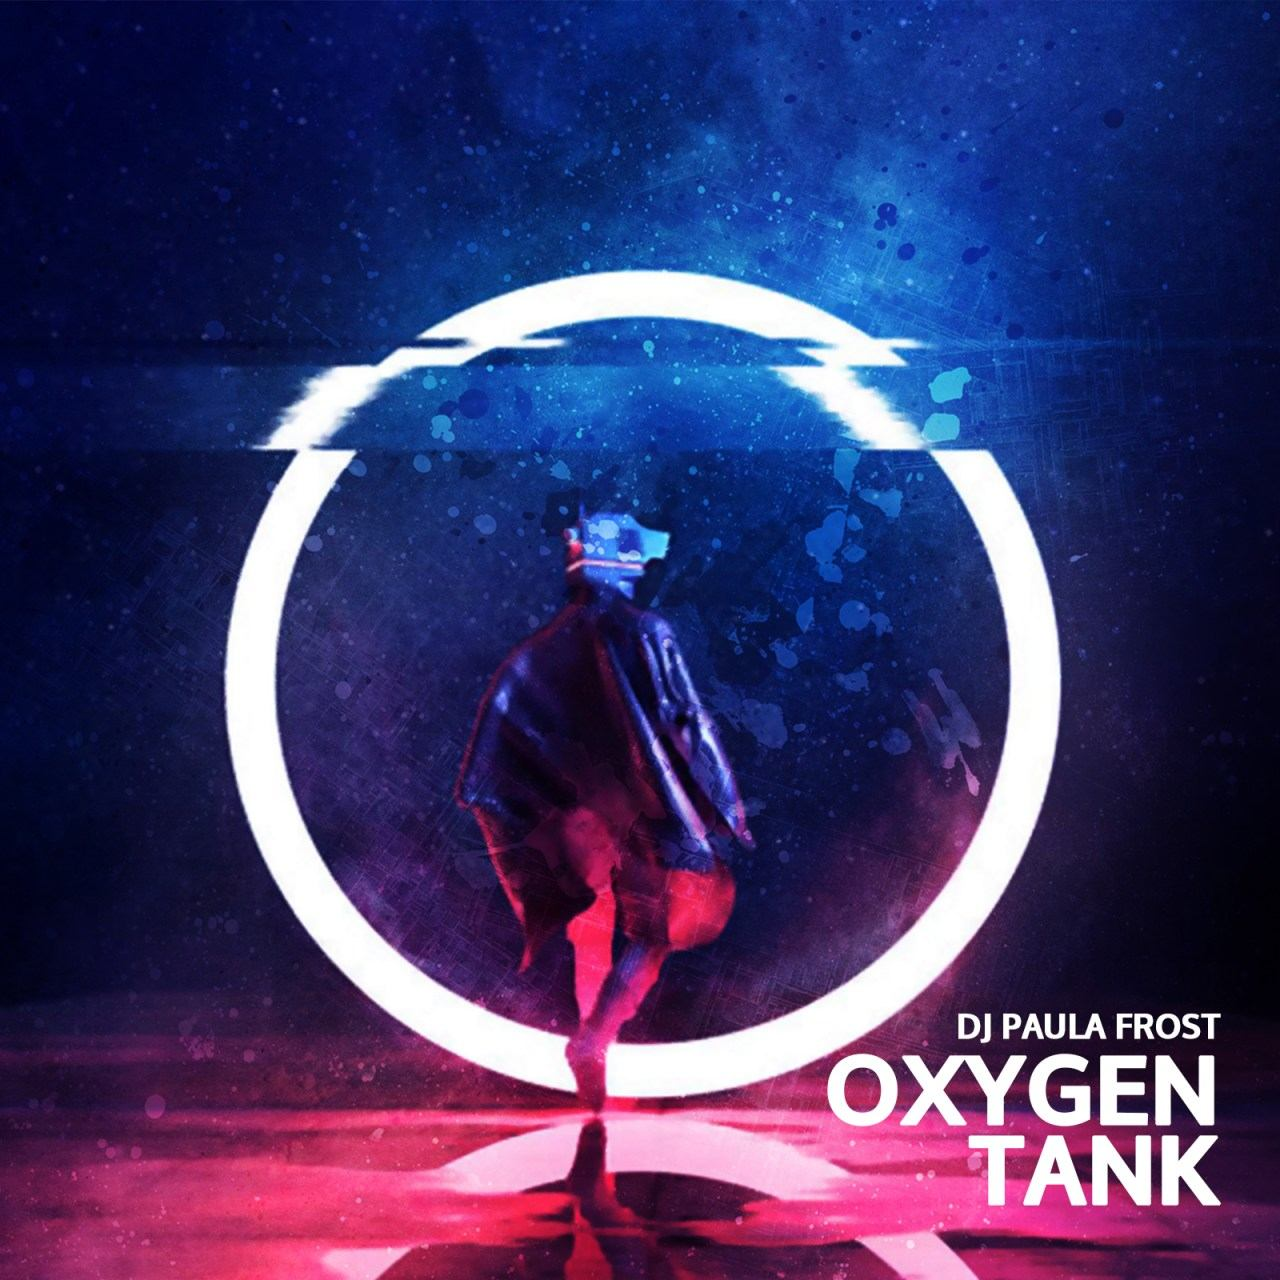 DJ PAULA FROST – OXYGEN TANK (SINGLE DOWNLOAD)